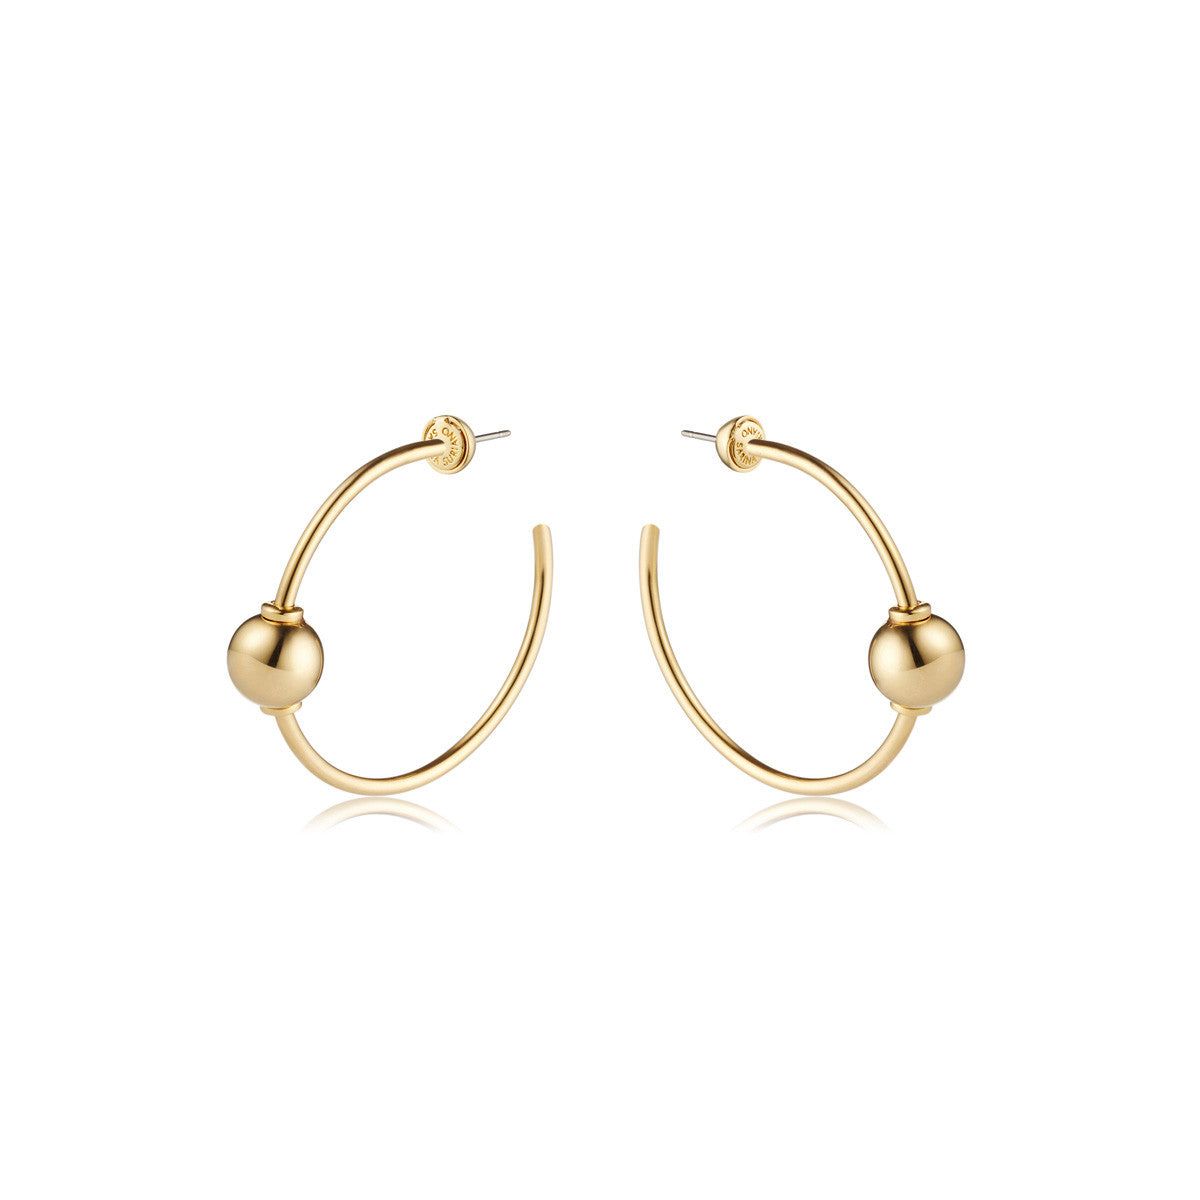 Solid brass, 18K gold plated Mars Circulus hoop earrings – front